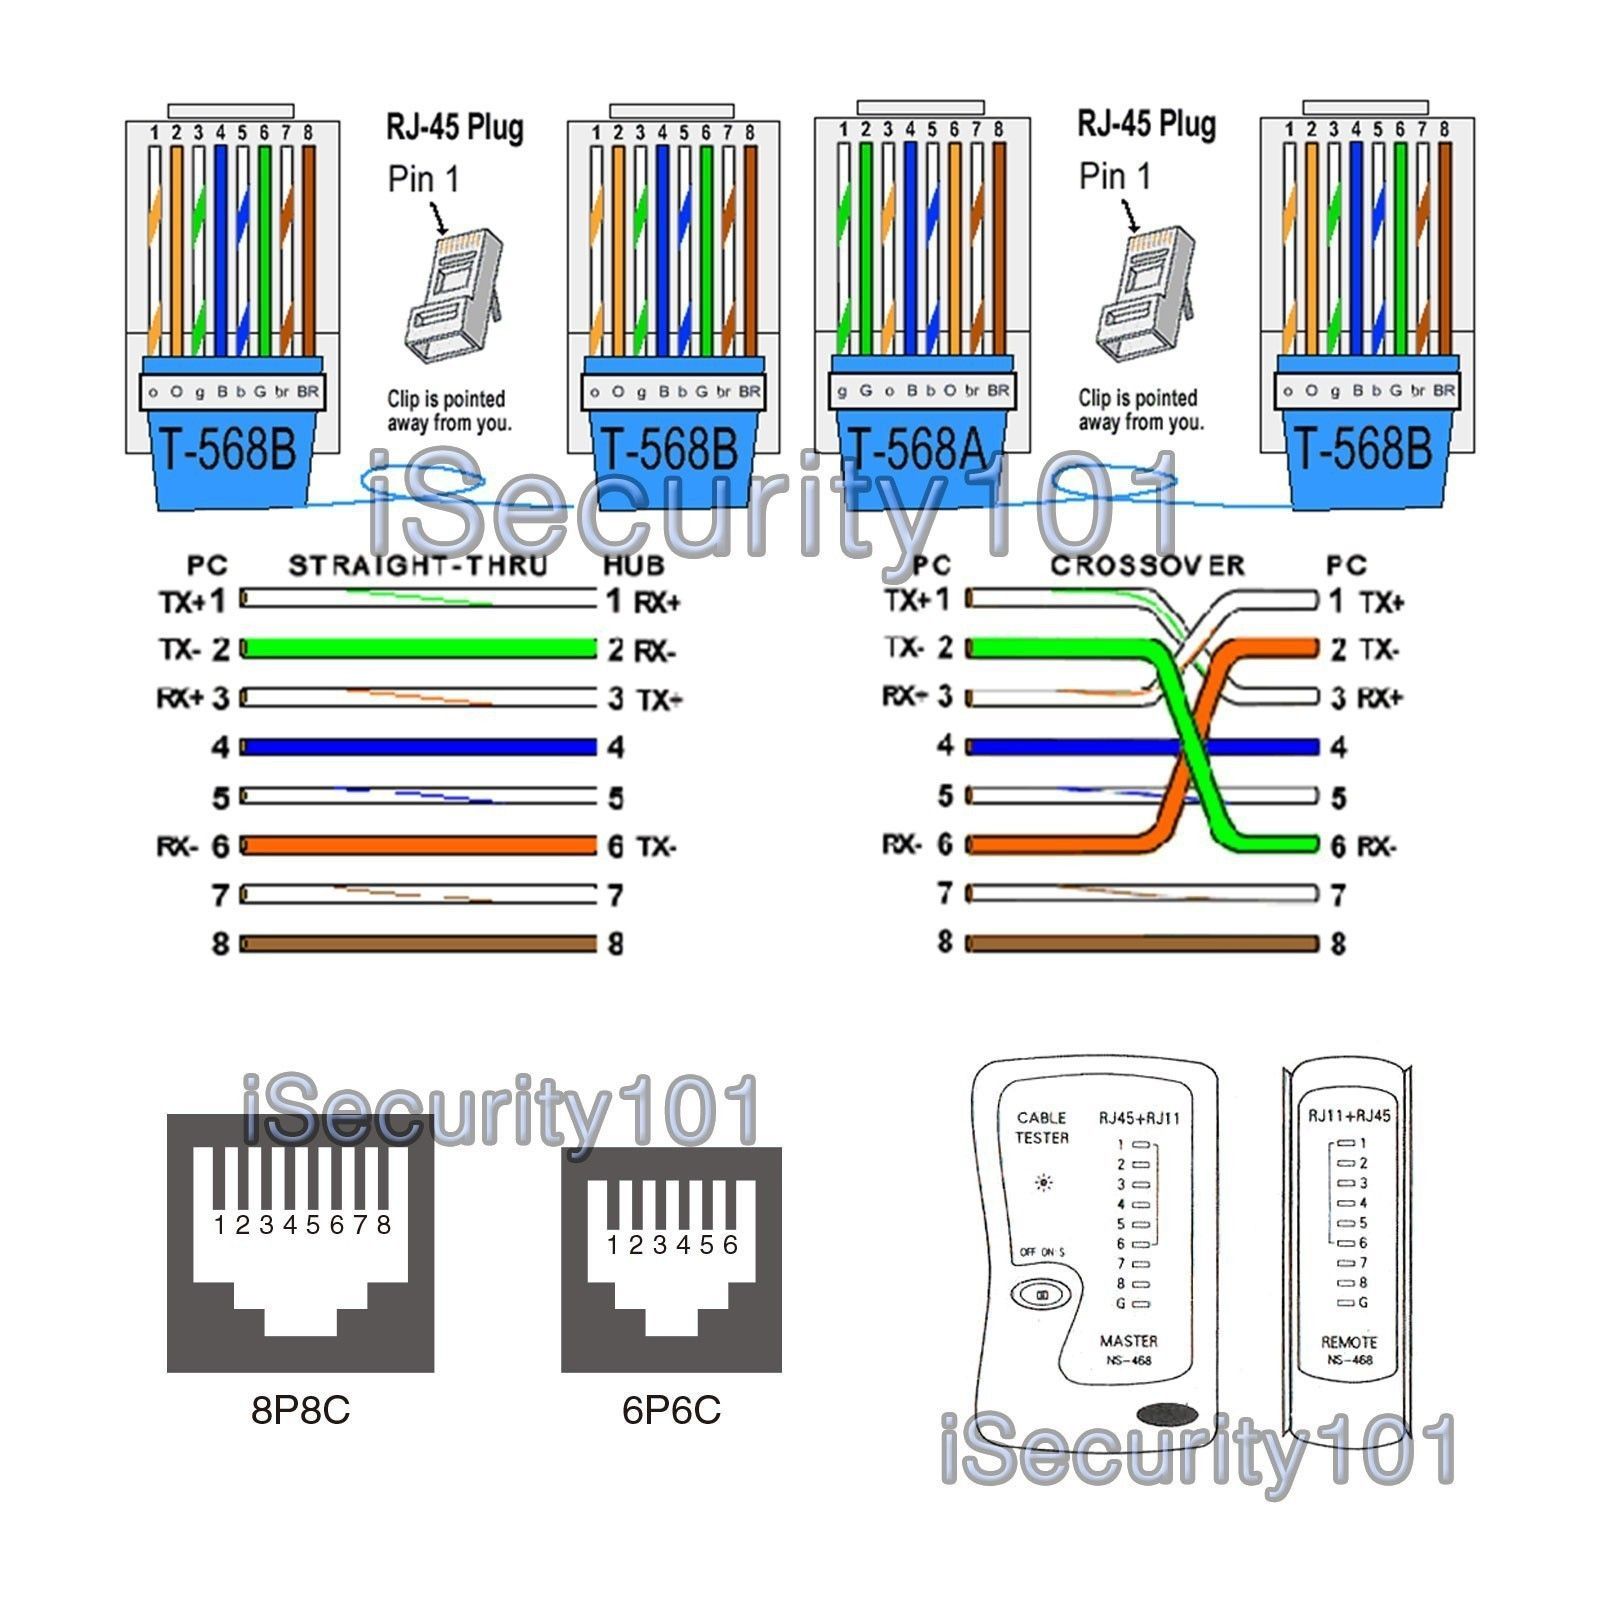 Cat6 Wiring Diagram B - Wiring Diagram 500 on bnc wiring, rca wiring, catv wiring, tv wiring, cat5 wiring, lan wiring, ethernet wiring, displayport wiring, t1 wiring, rj11 wiring, cat wiring, cable wiring, networking wiring, data wiring, audio wiring, router wiring, hdmi wiring, rj45 wiring, rs232 wiring, cat5e wiring,